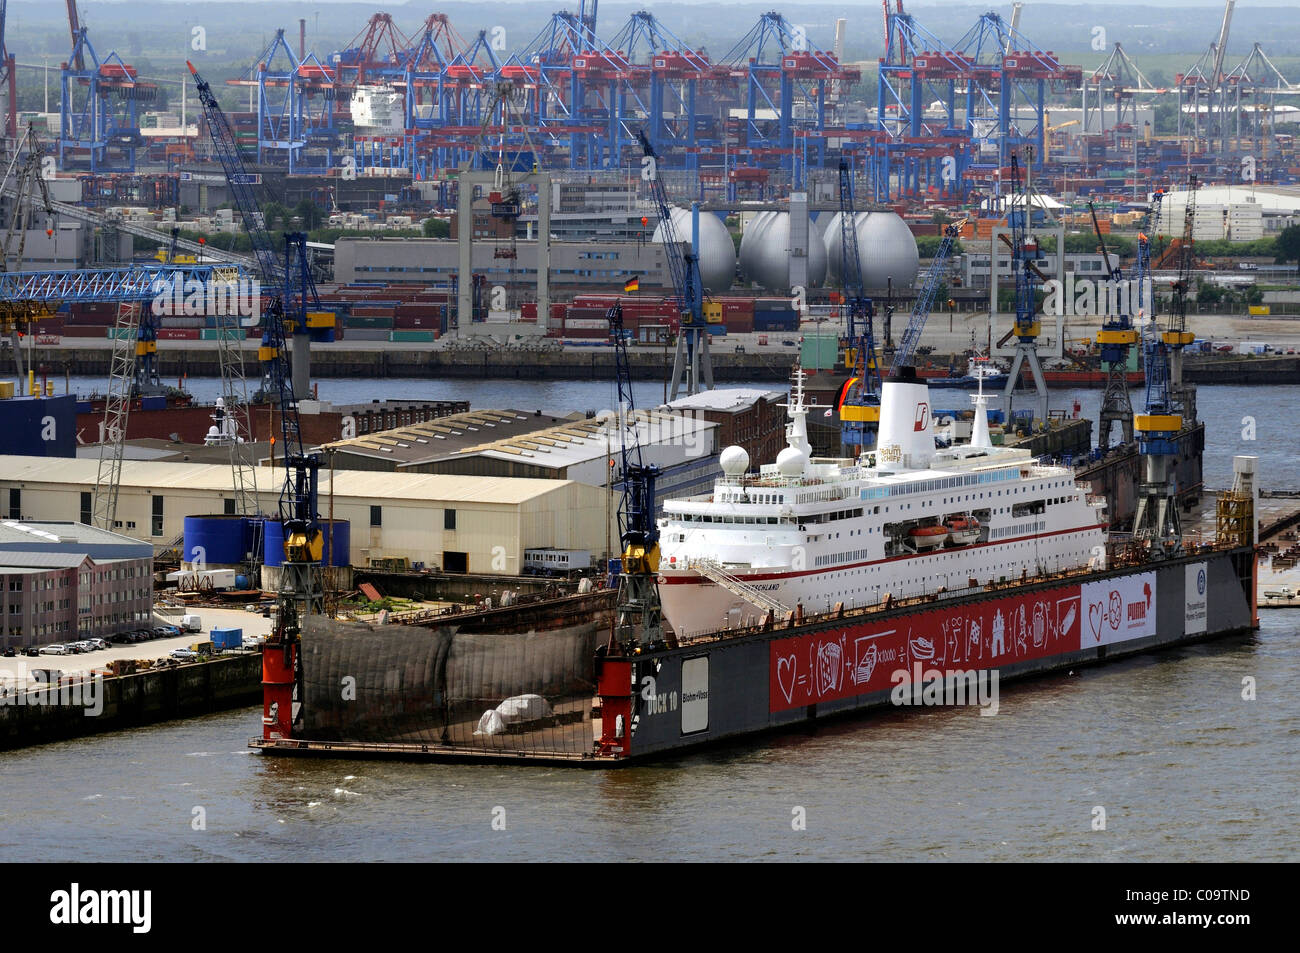 Shipyards with MS Deutschland in the dock, harbour, Hamburg, Germany, Europe - Stock Image